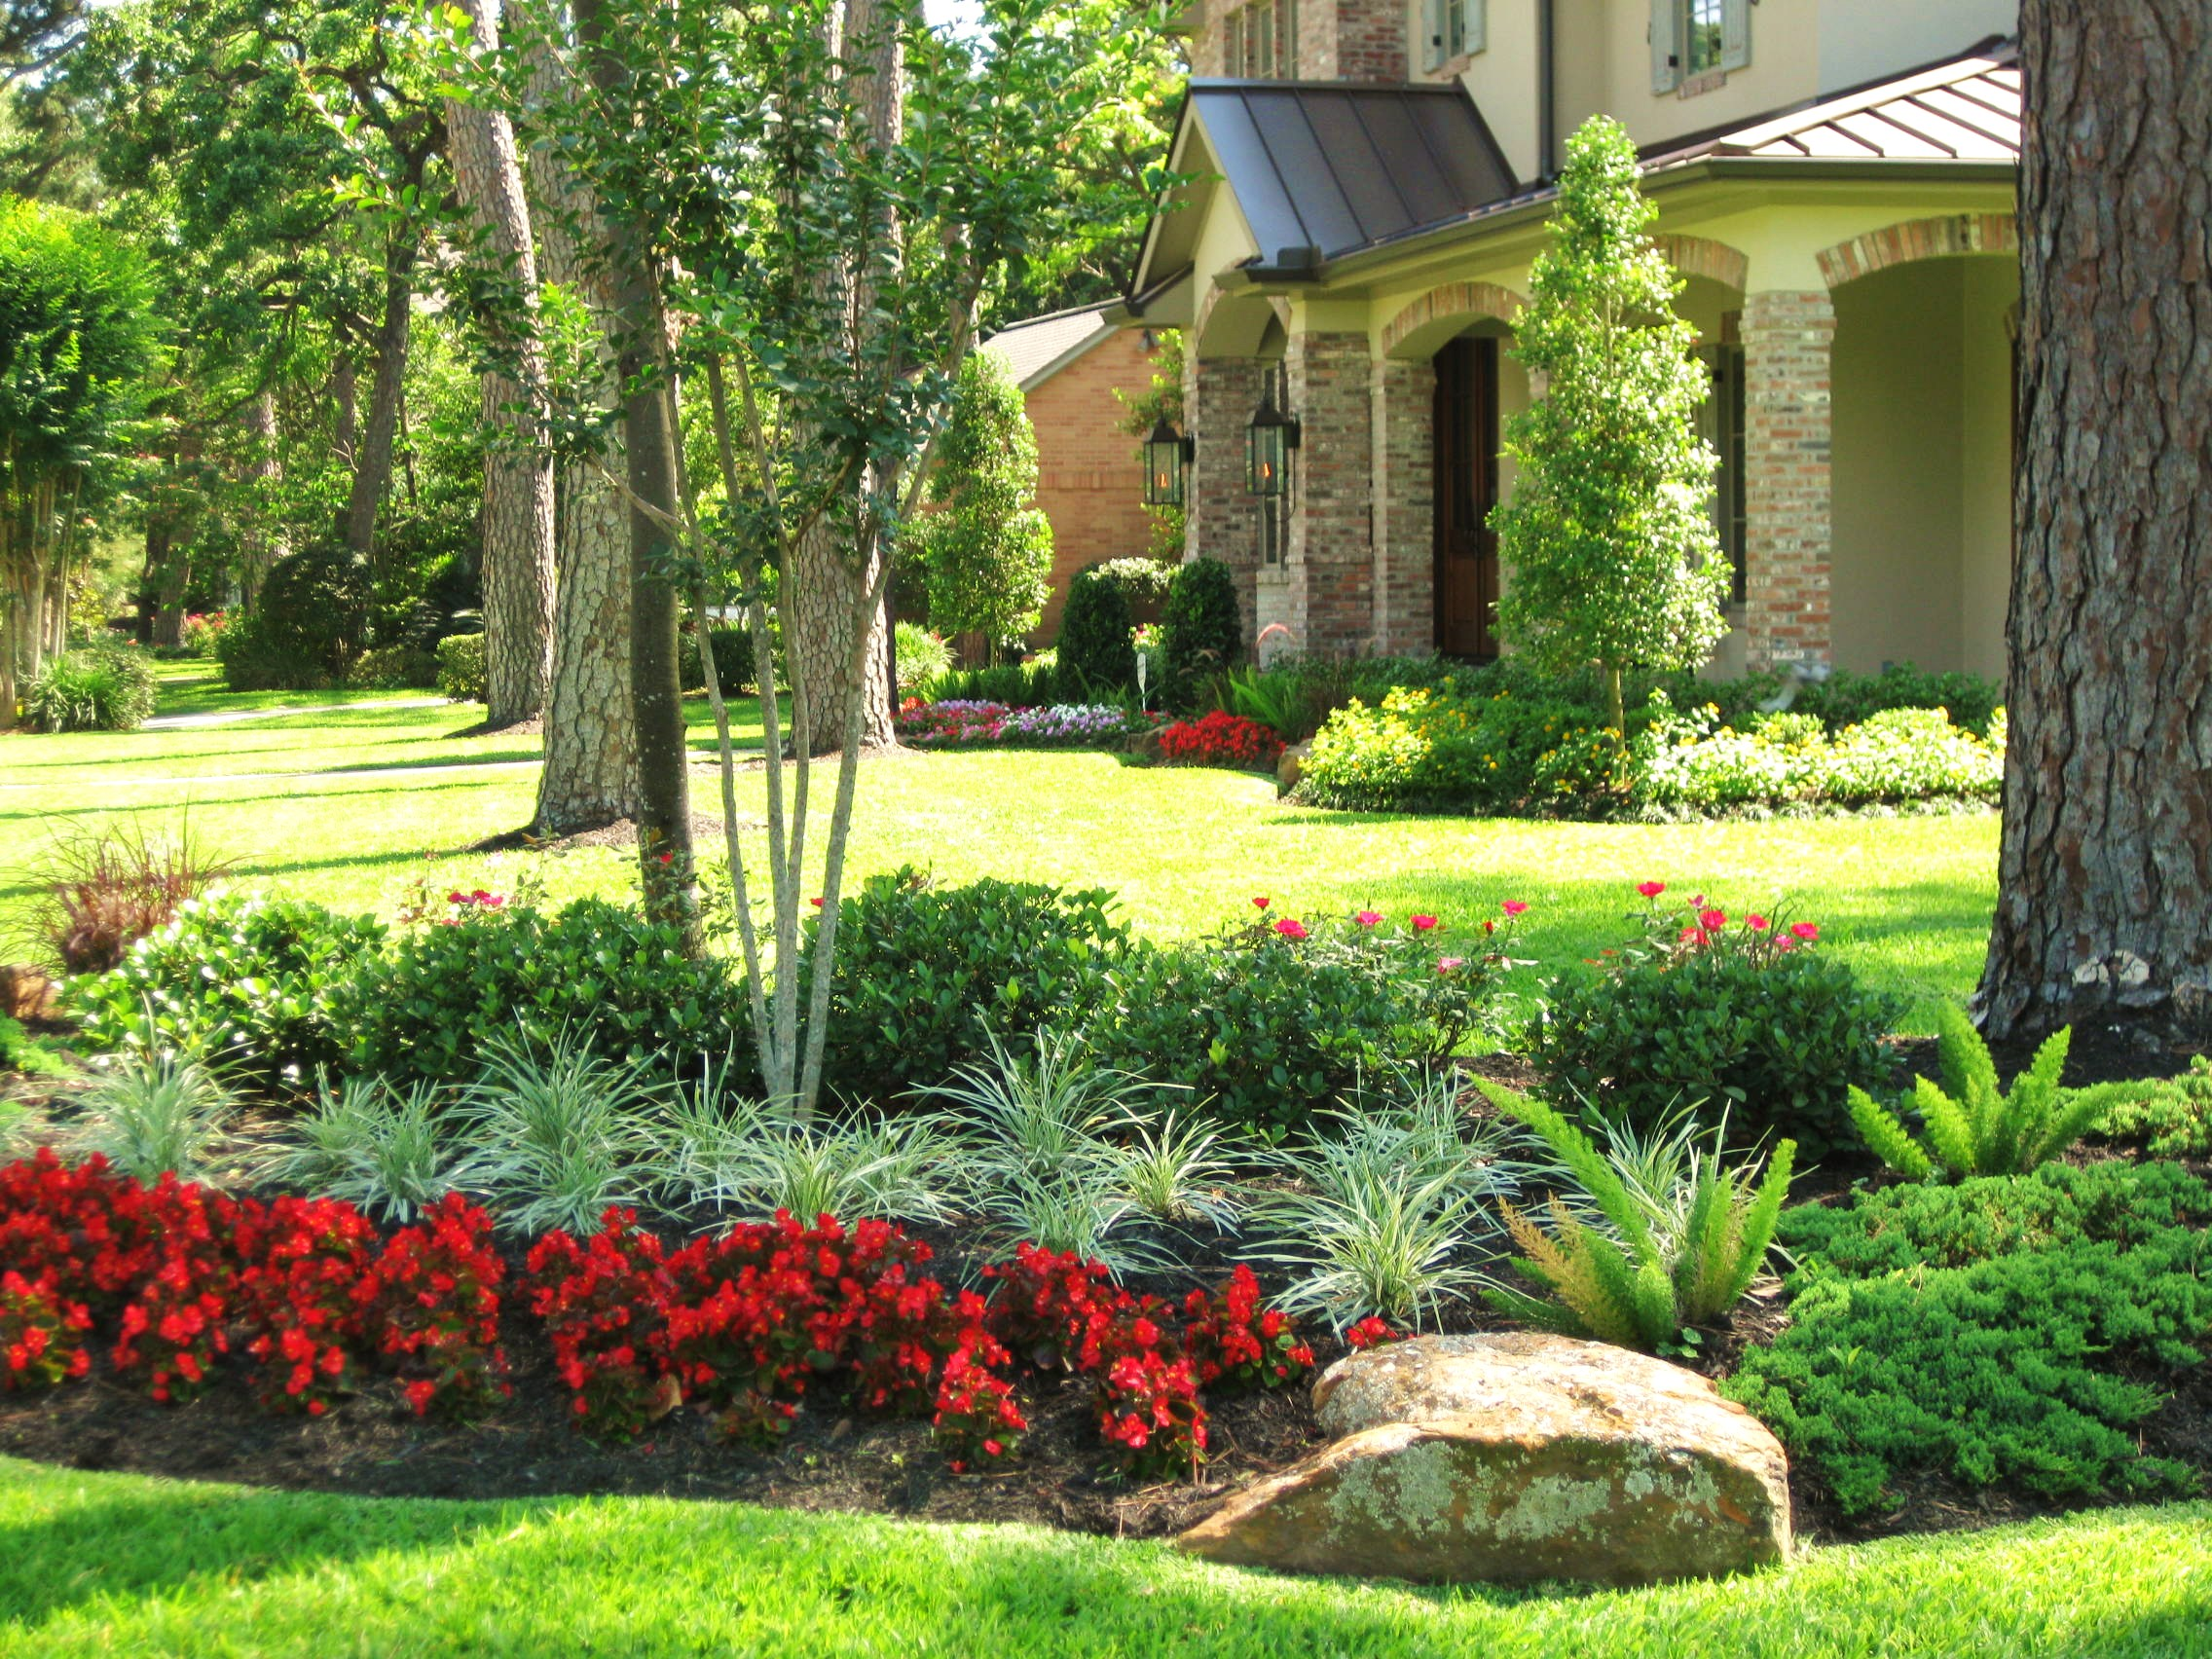 mls landscape restoration houston tx